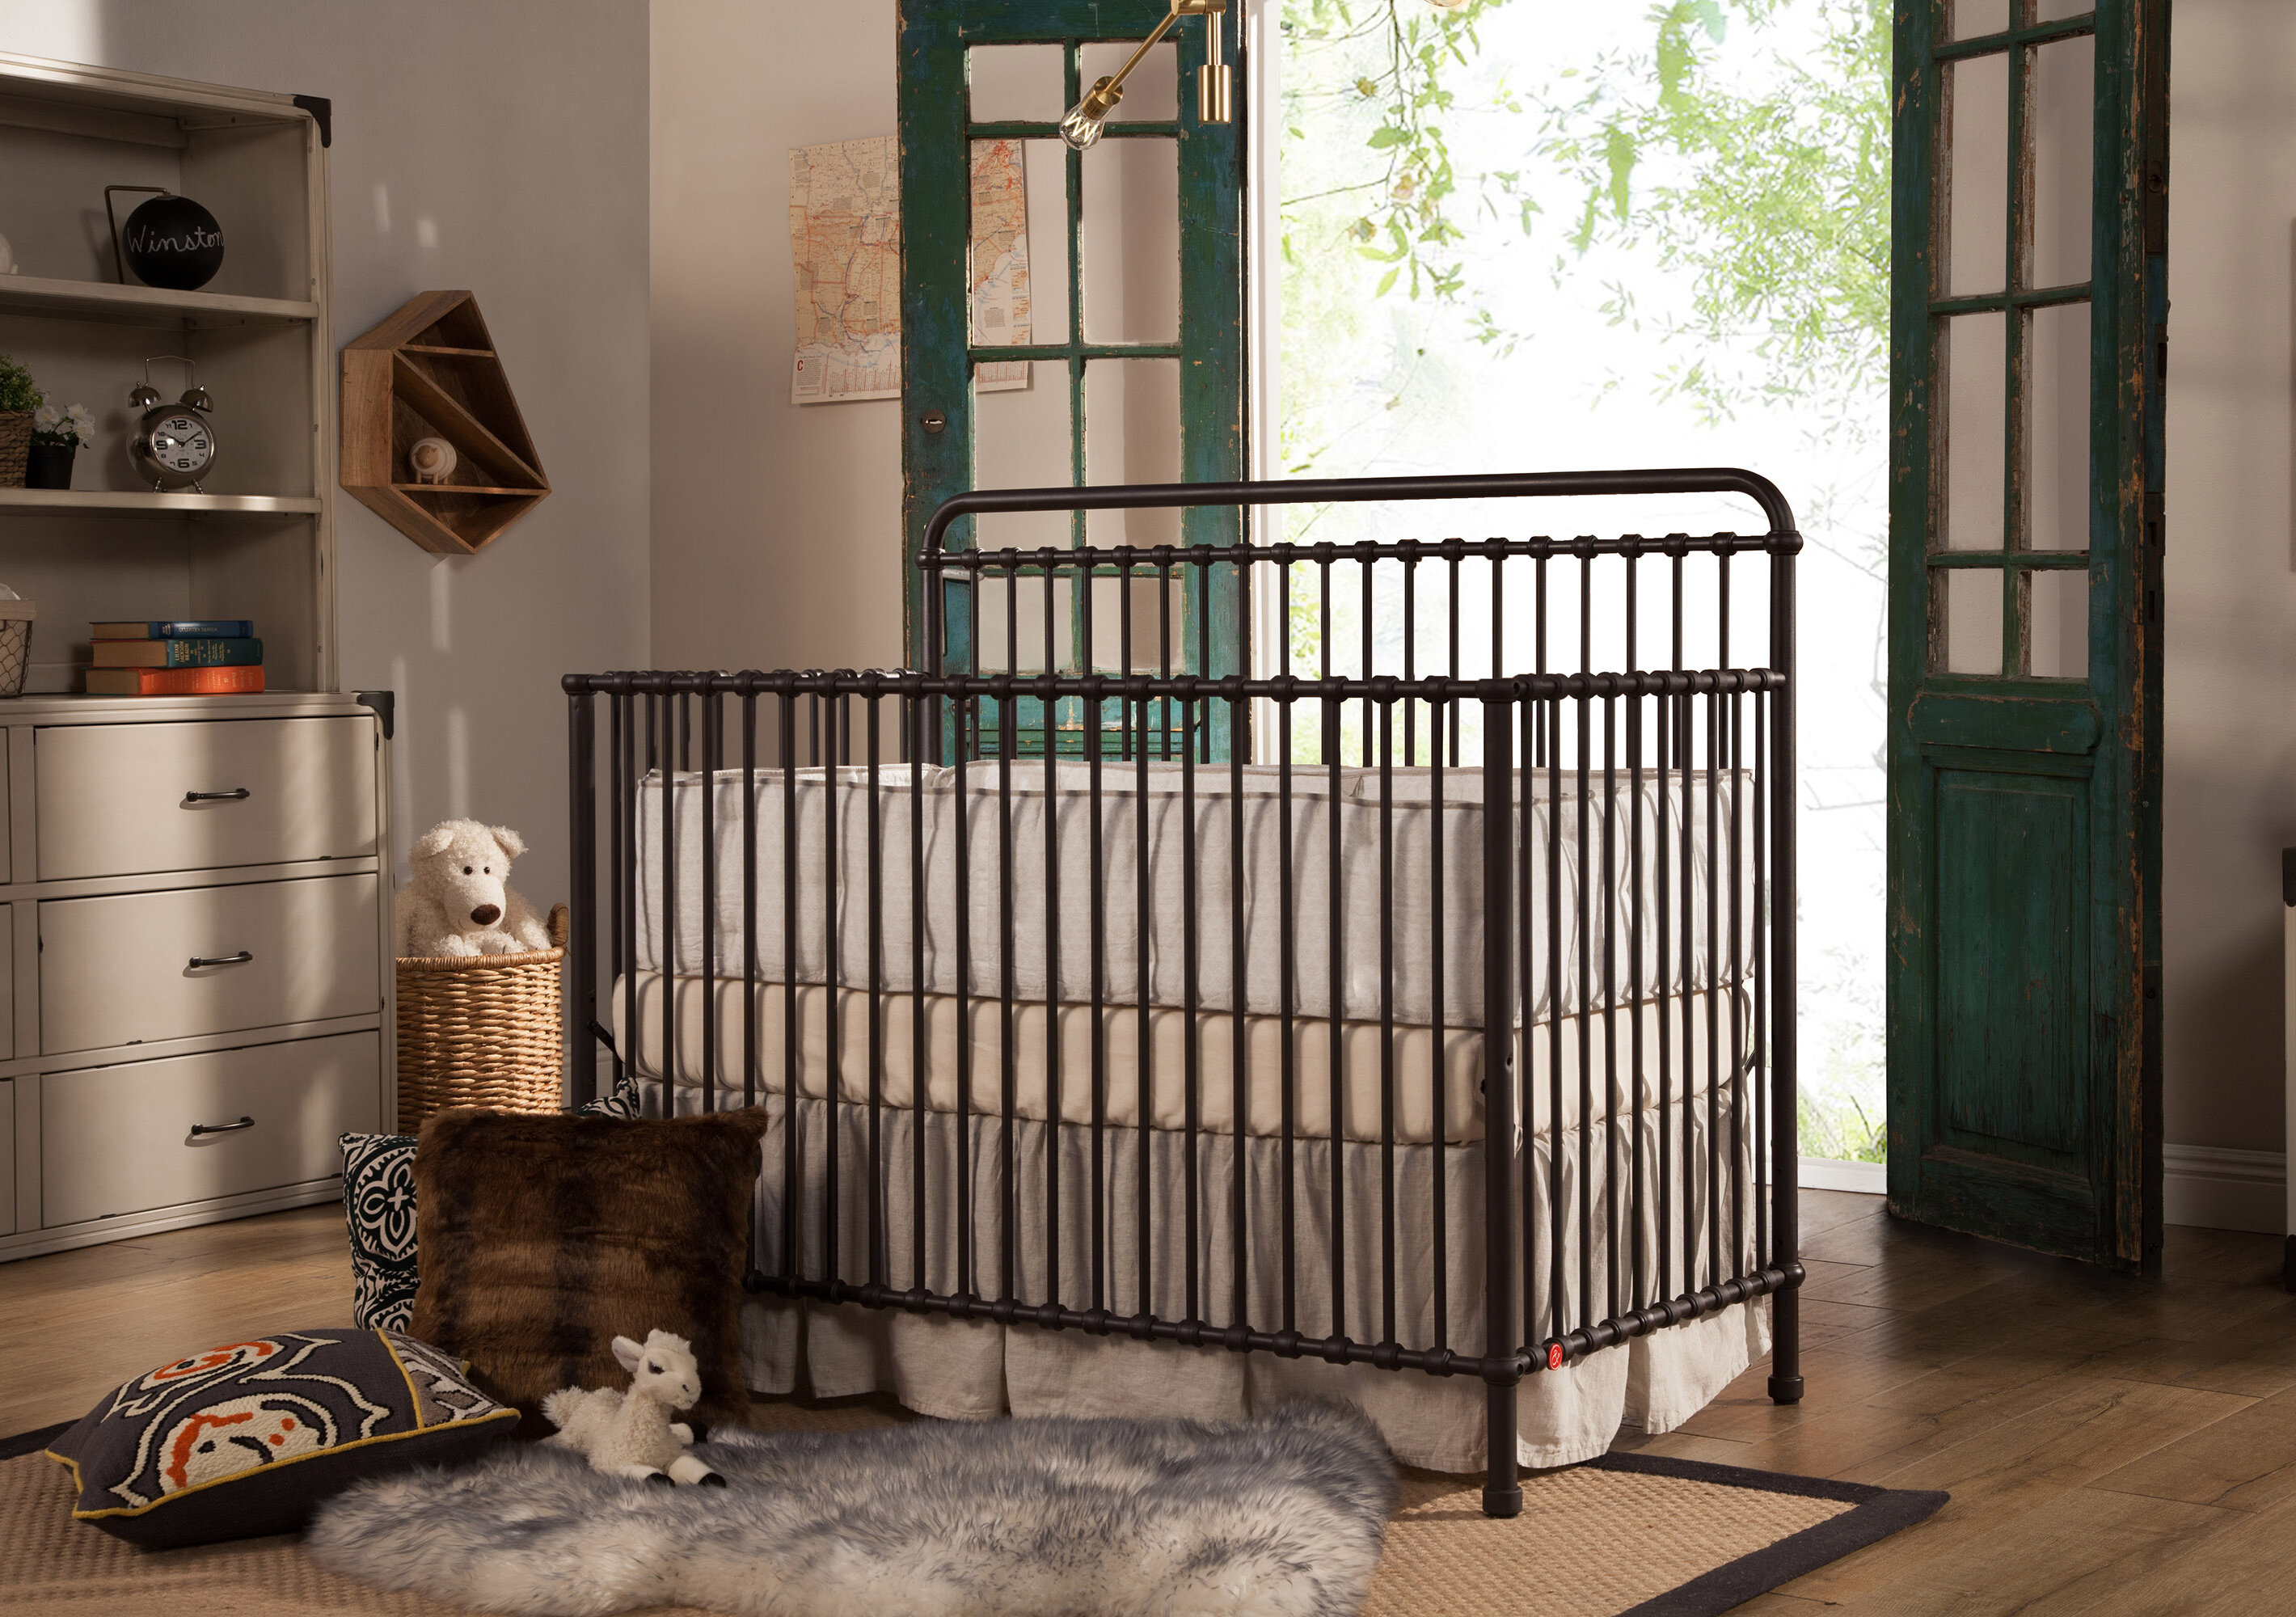 Million Dollar Baby Clic Winston 4 In 1 Convertible Crib Reviews Wayfair